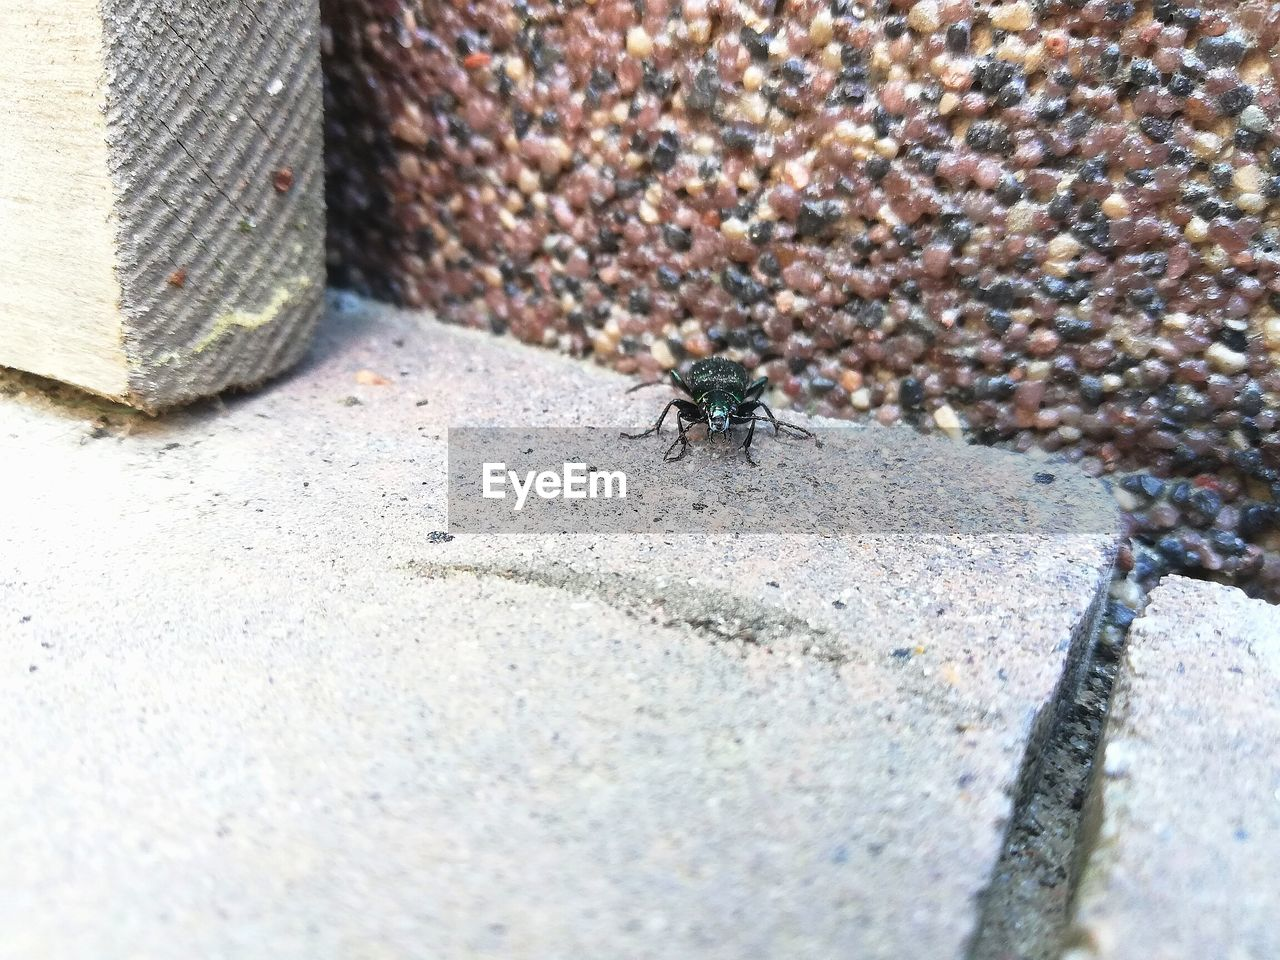 animal themes, animal wildlife, animal, animals in the wild, invertebrate, insect, one animal, day, selective focus, close-up, no people, nature, ant, outdoors, textured, high angle view, fly, zoology, housefly, concrete, marine